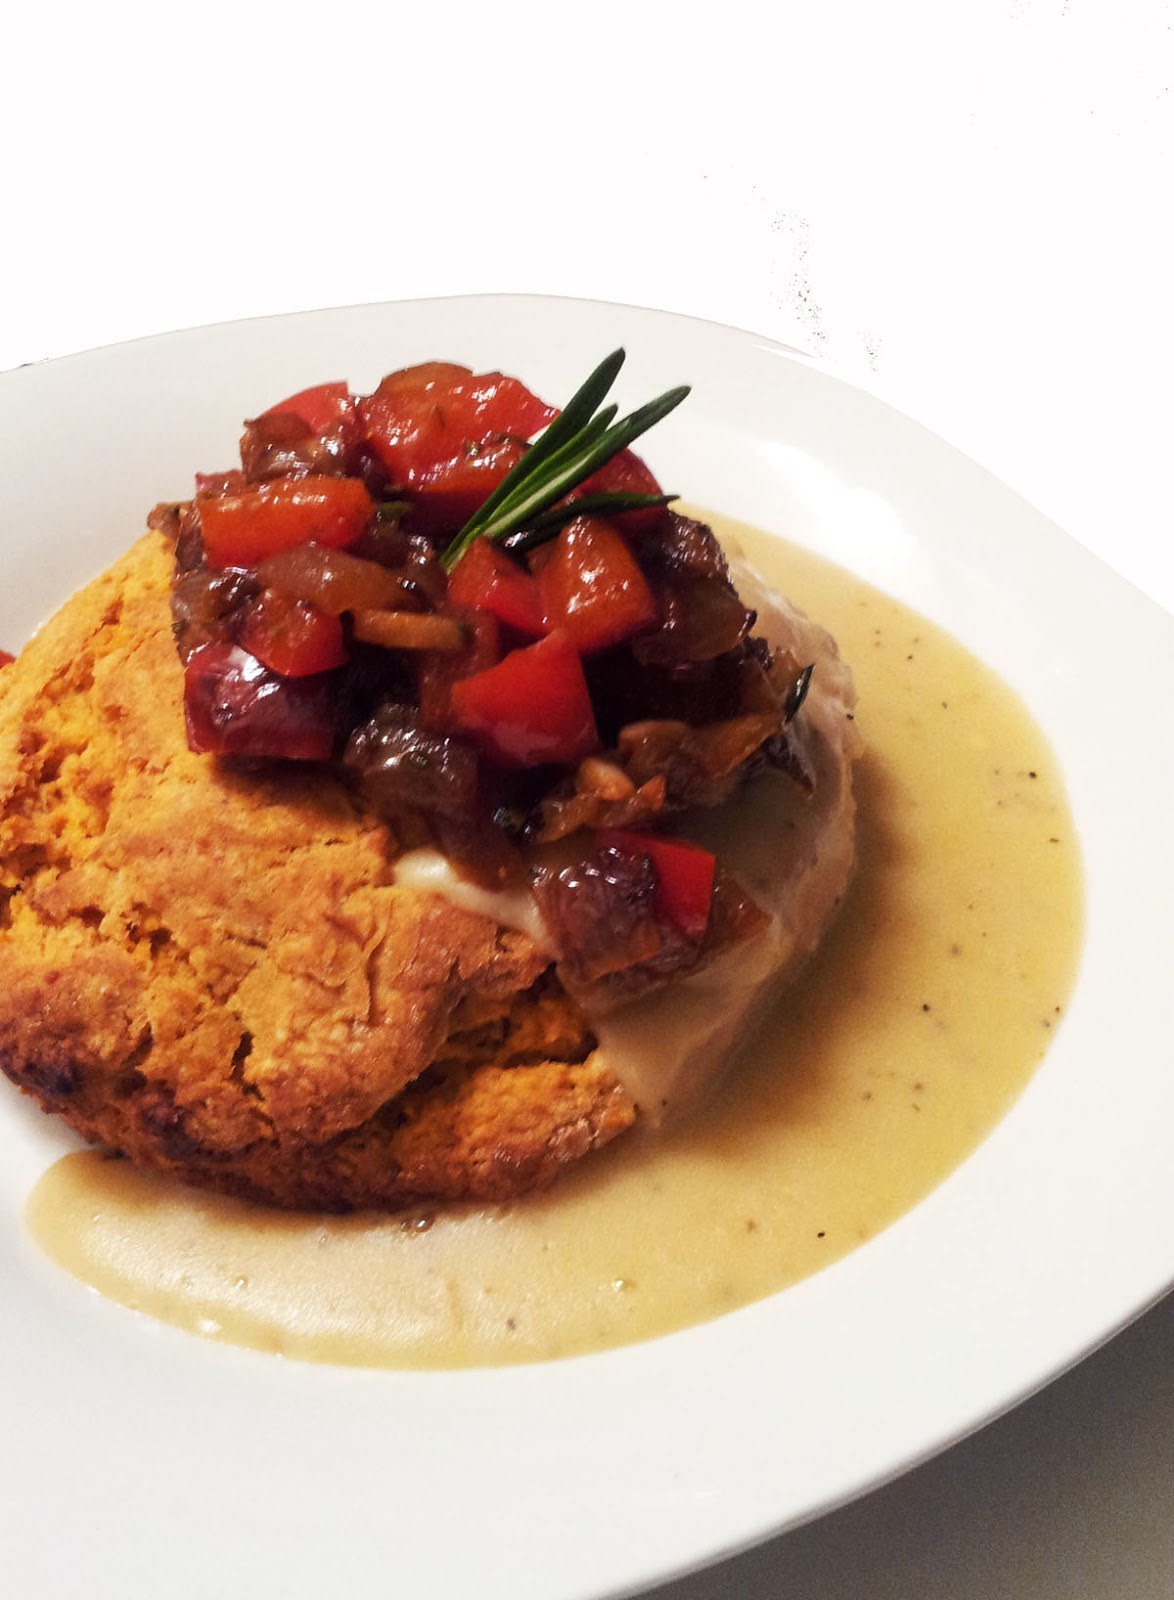 ... biscuits and gravy try these sweet potato biscuits this recipe makes 4